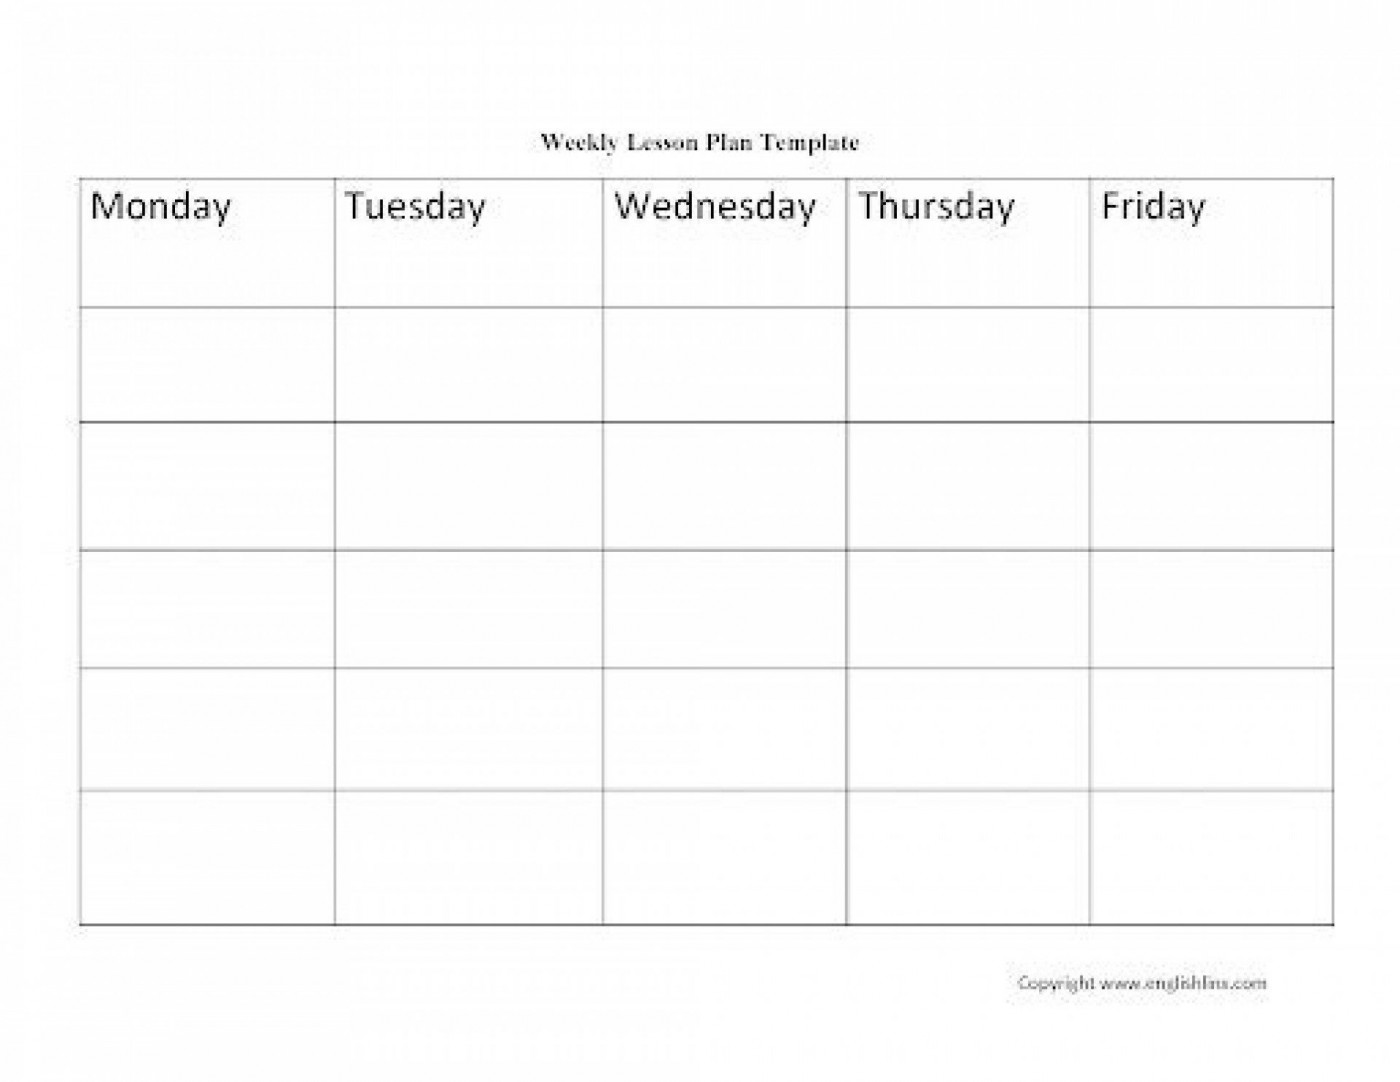 002 Formidable Weekly Lesson Plan Template Google Doc Concept  Ubd Siop1400